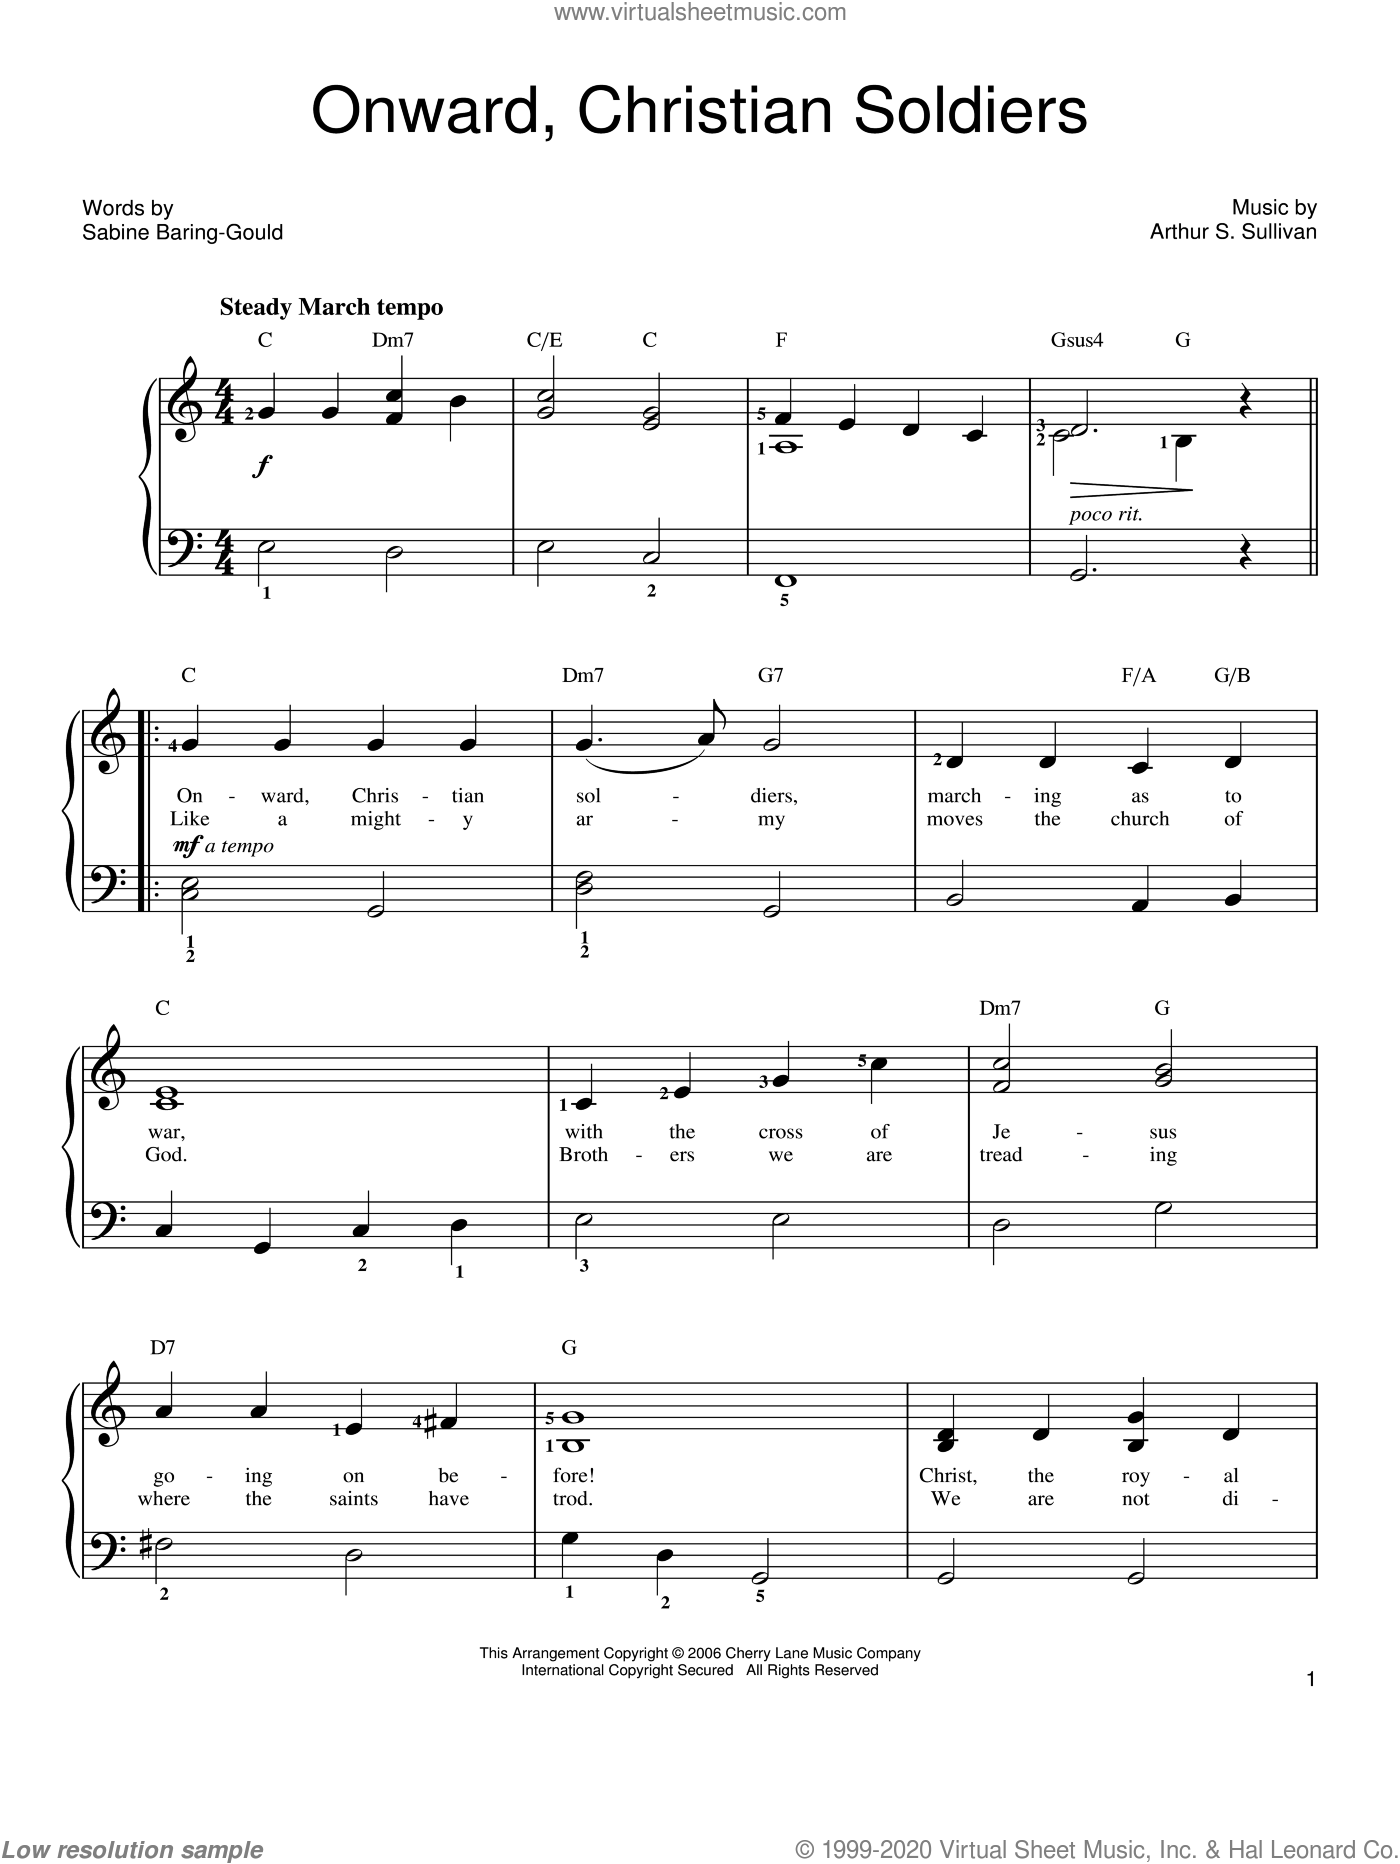 Onward, Christian Soldiers sheet music for piano solo by Sabine Baring-Gould and Arthur Sullivan, easy skill level